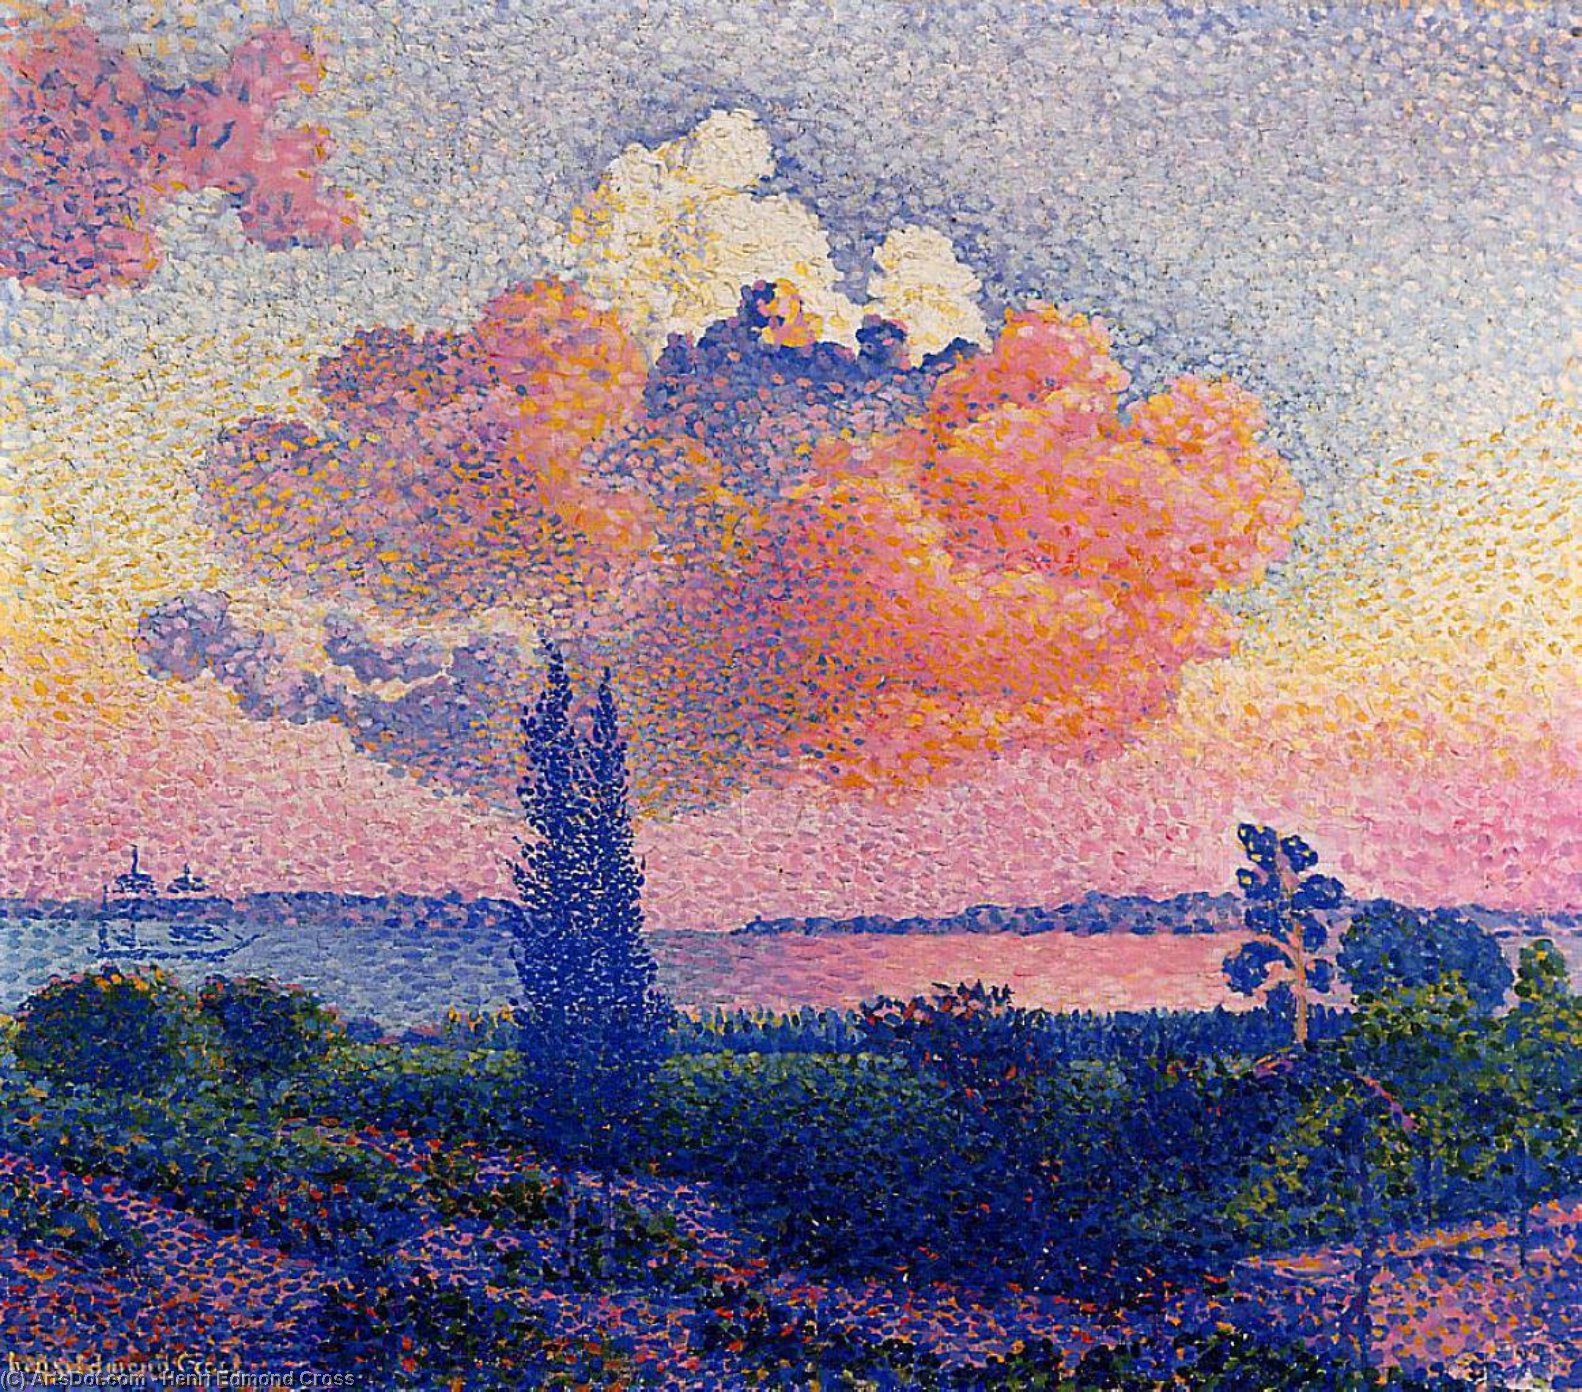 粉红云, 油画 通过 Henri Edmond Cross (1856-1910, France)